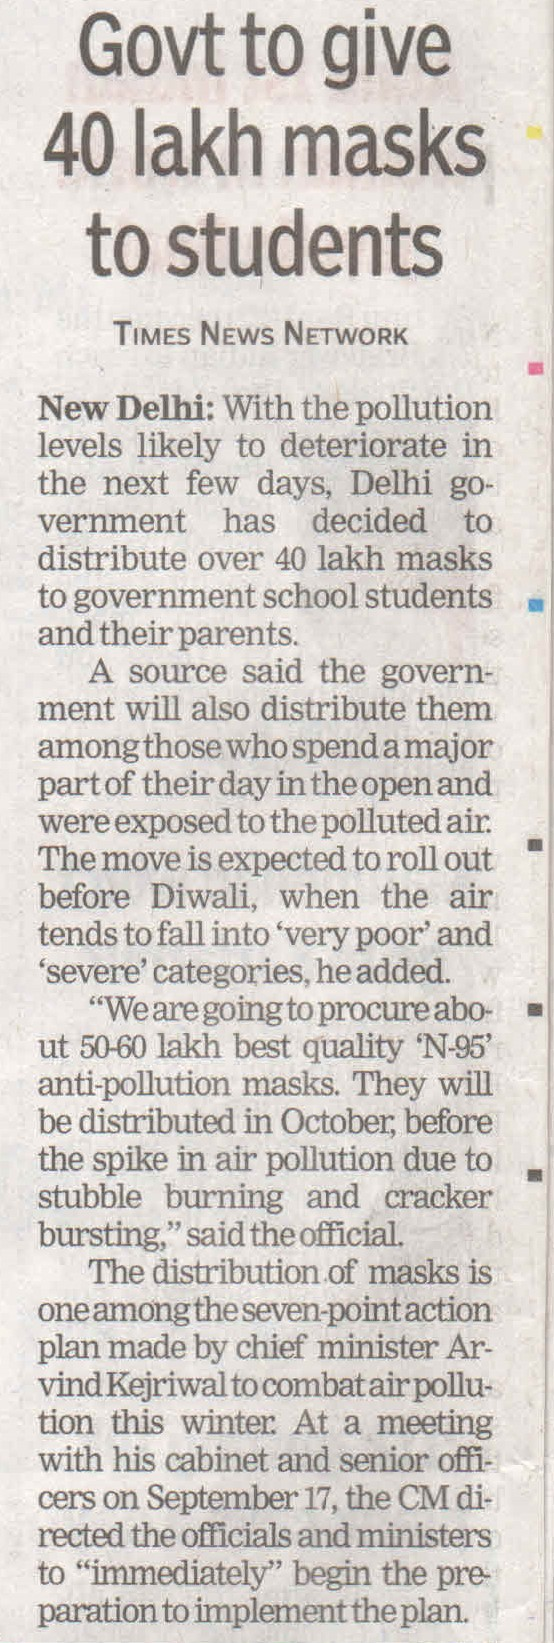 Your tryst with clean air may end next week - Govt. to give 40 Lakh masks to students